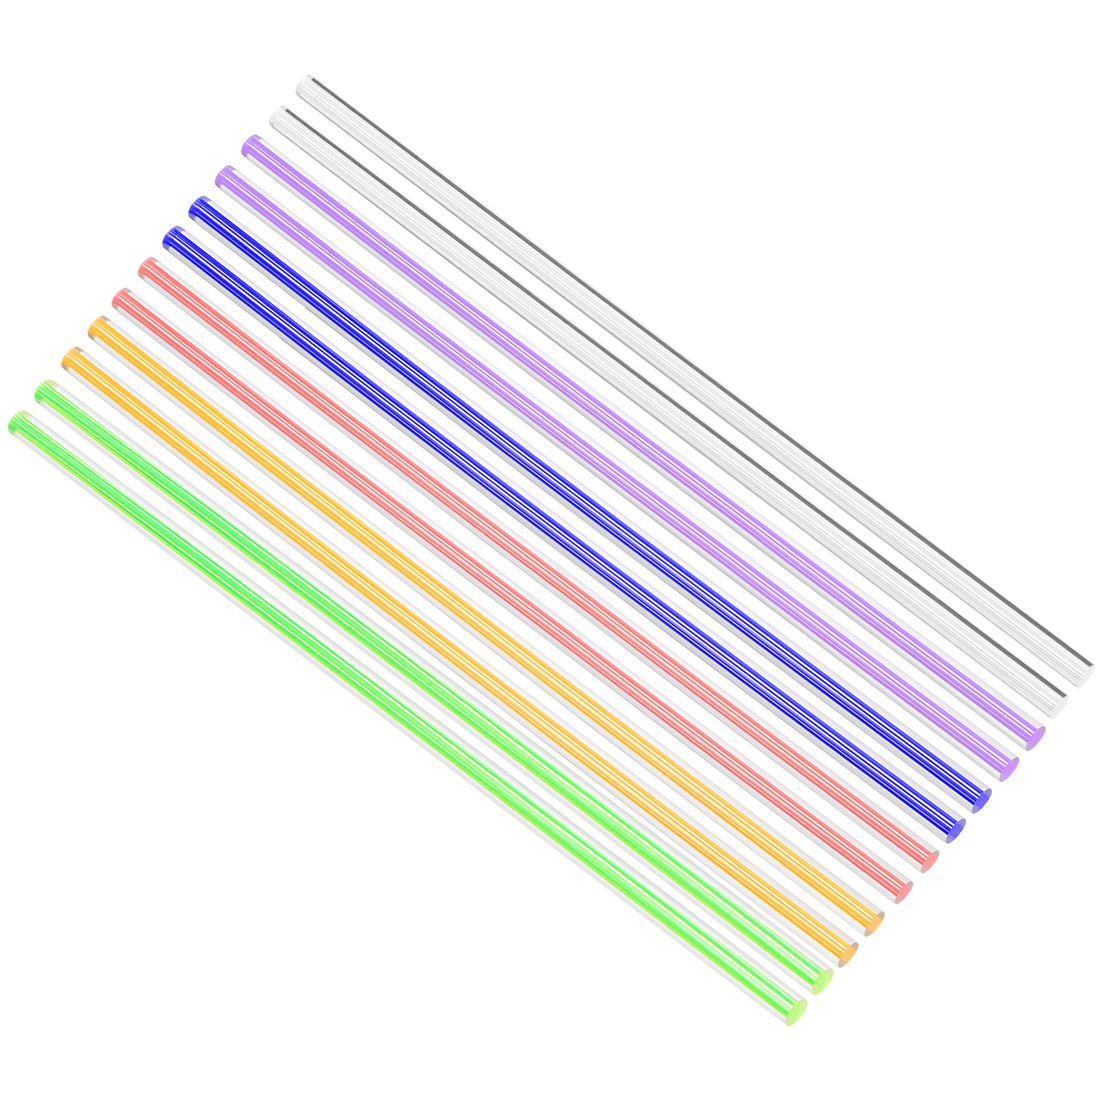 Solid Acrylic Round Rod Straight Line PMMA Bar 6mmx250mm Multicolor 12Pcs